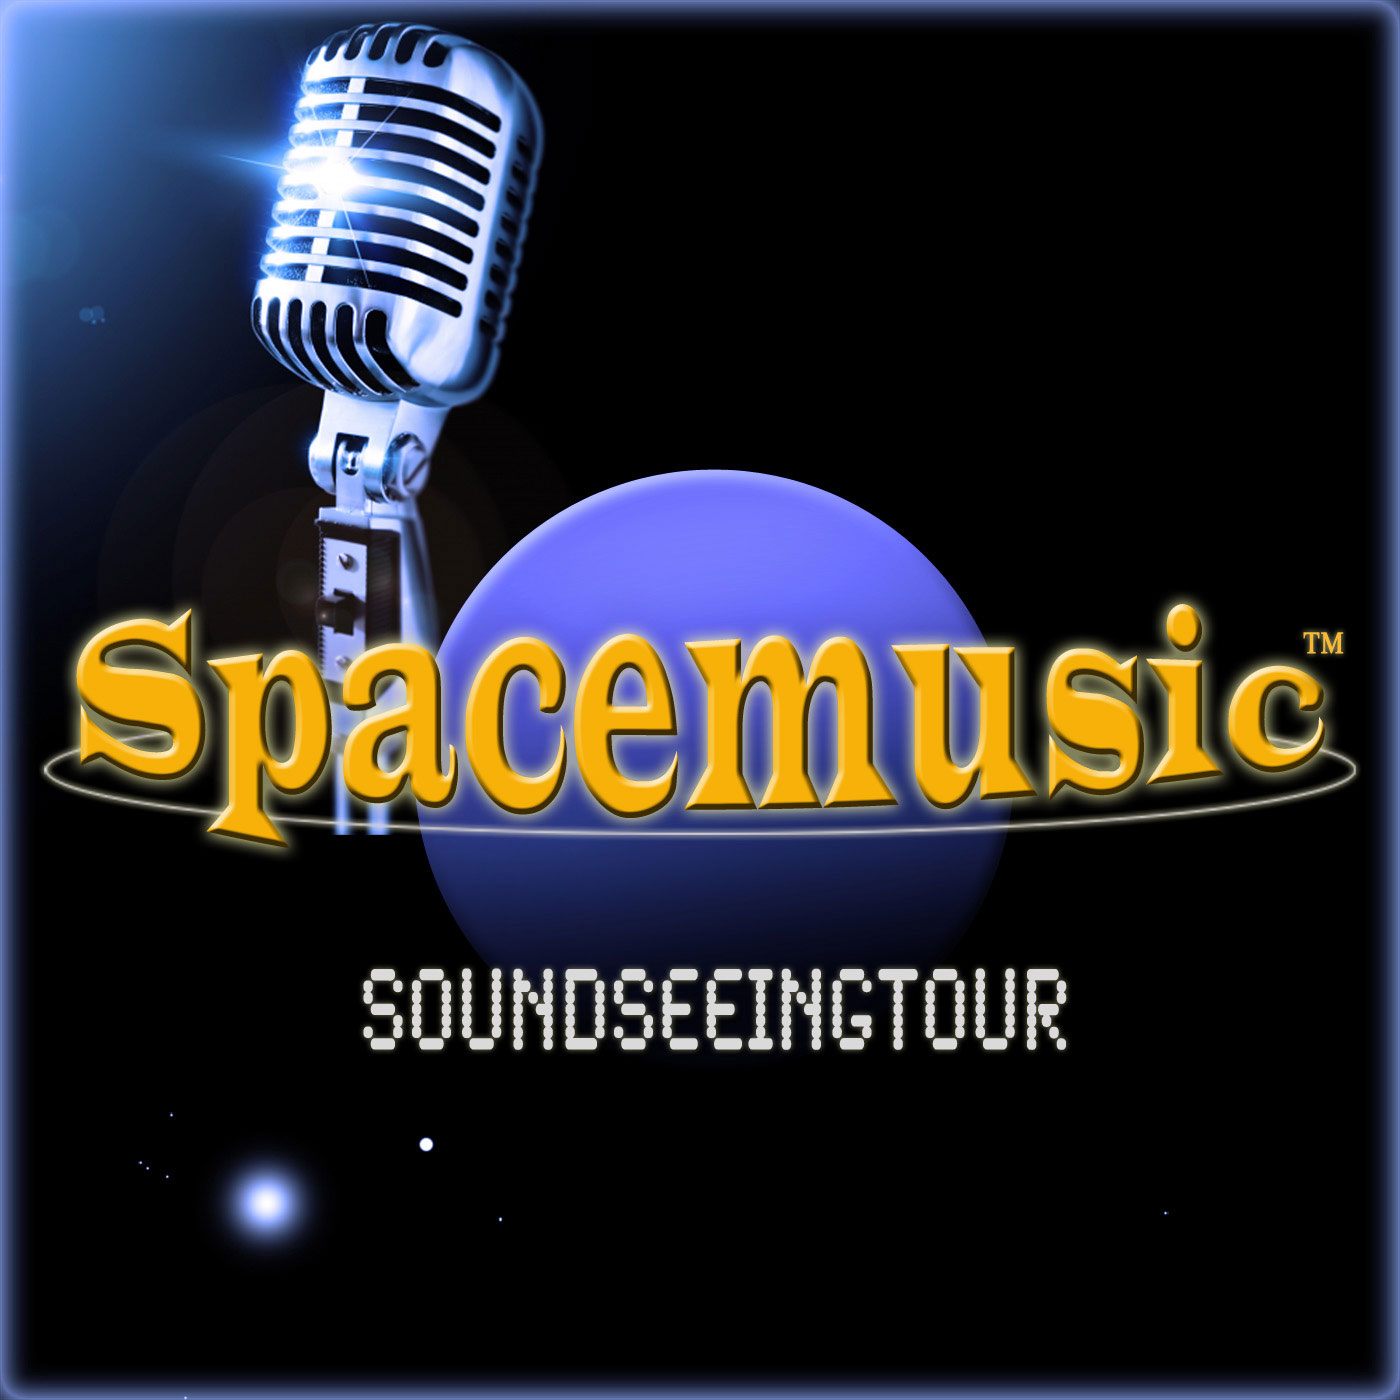 Soundseeingtour by Spacemusic